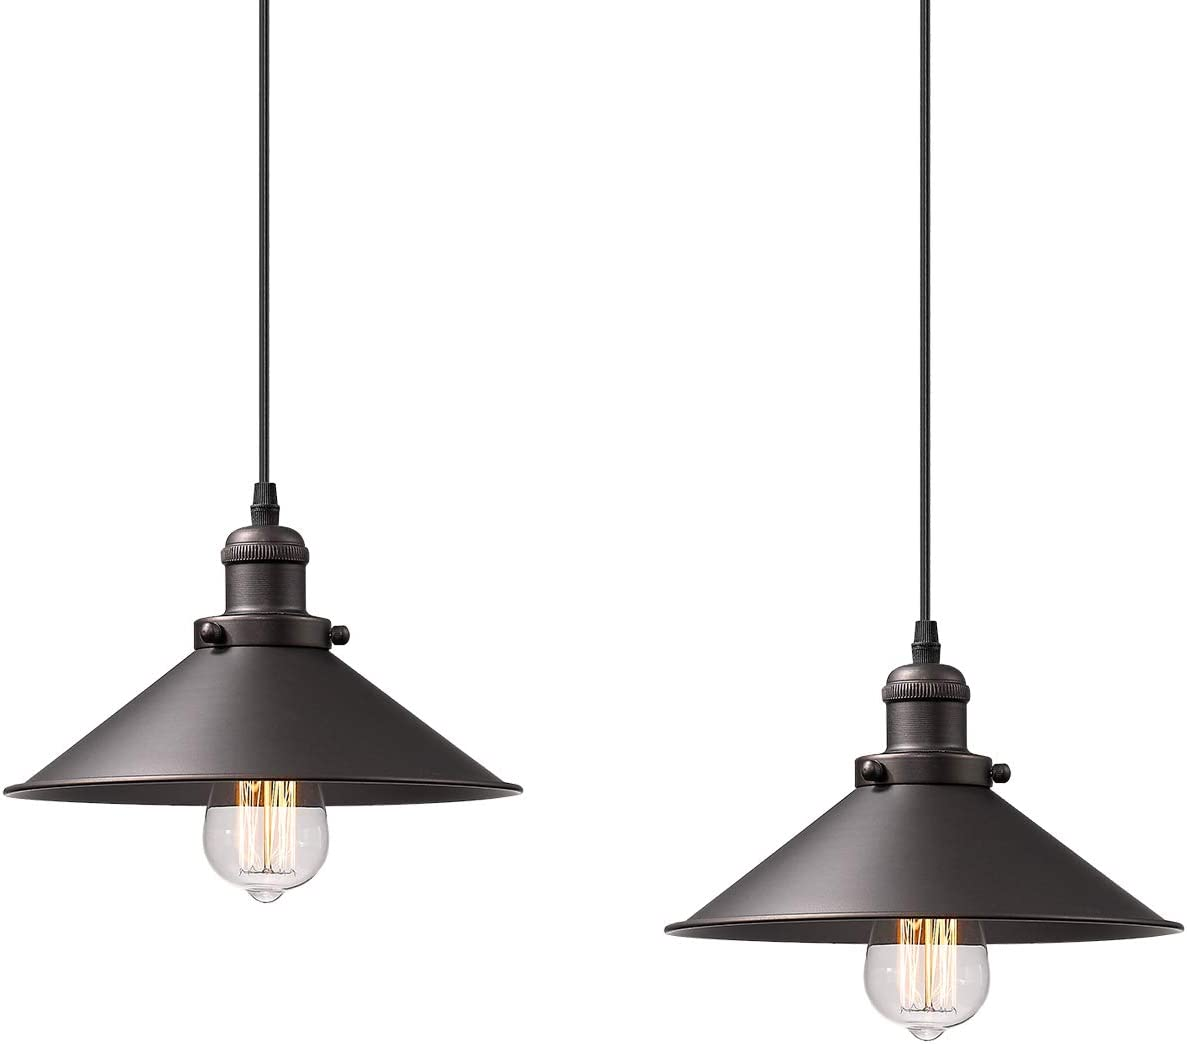 Zeyu Pendant Lighting 2 Pack Industrial Hanging Lights For Kitchen Oil Rubbed Bronze Finish With Metal Shade 102 A2 Orb Amazon Com